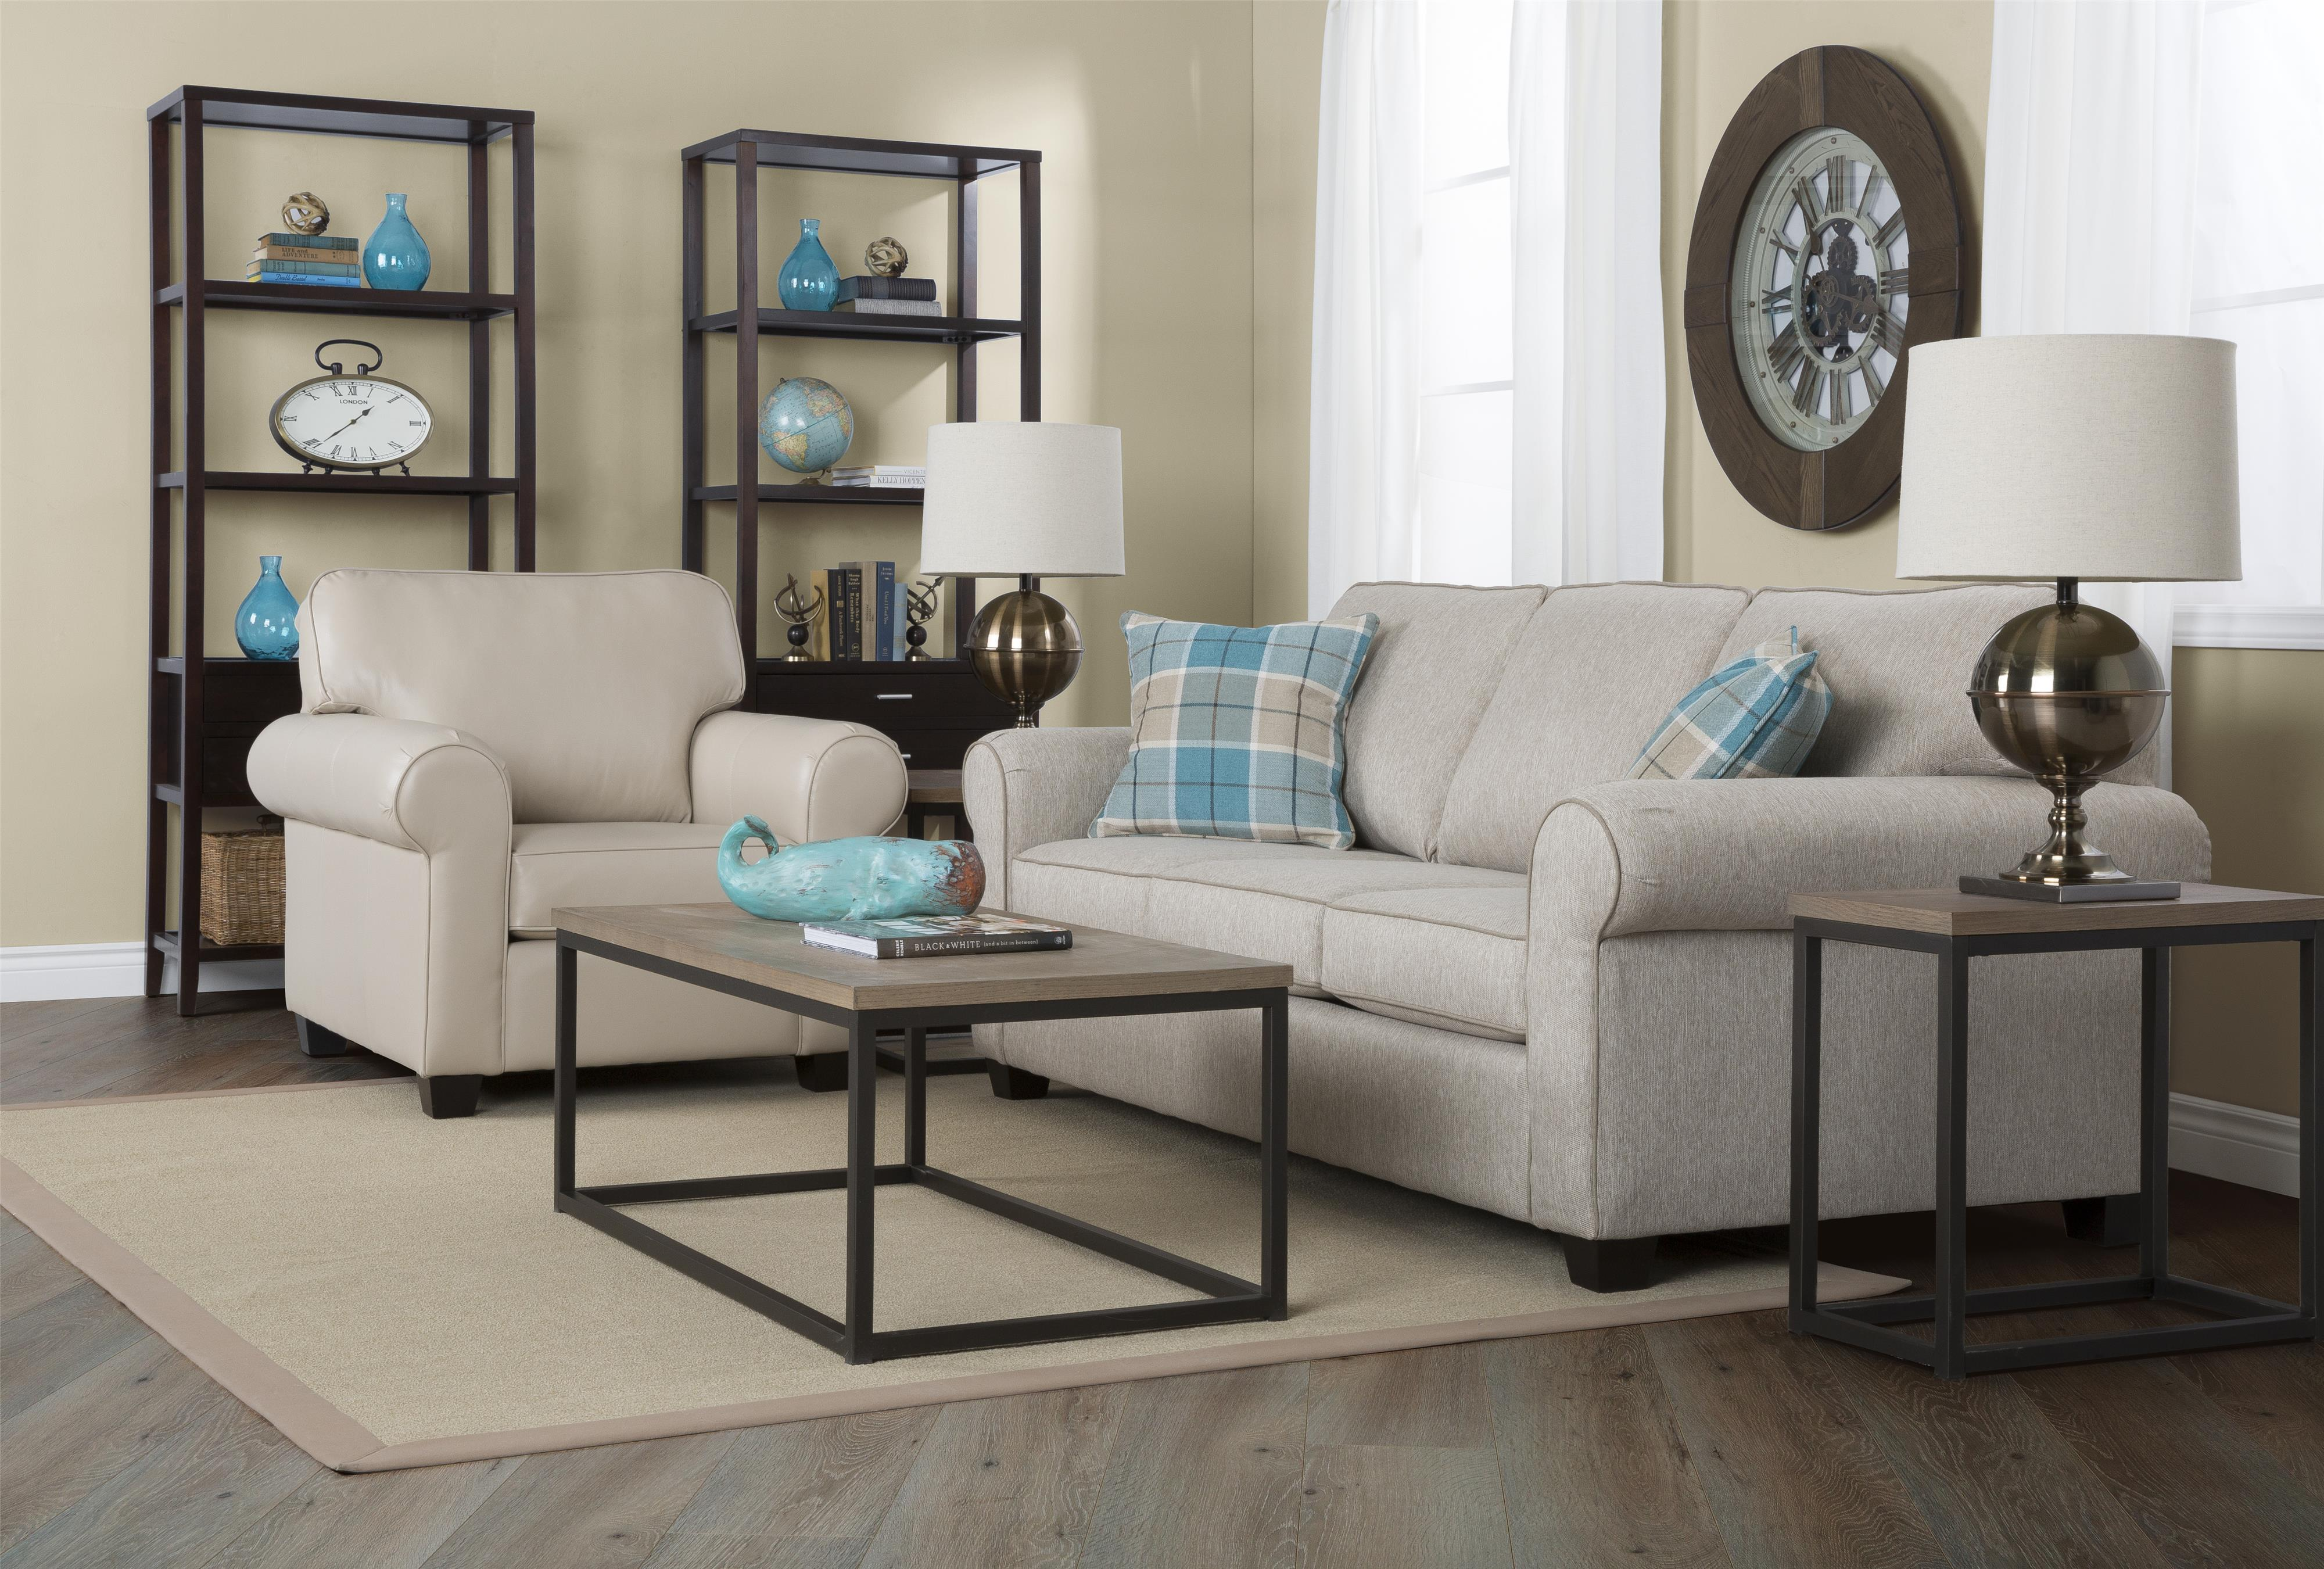 Porter Stationary Living Room Group by Taelor Designs at Bennett's Furniture and Mattresses